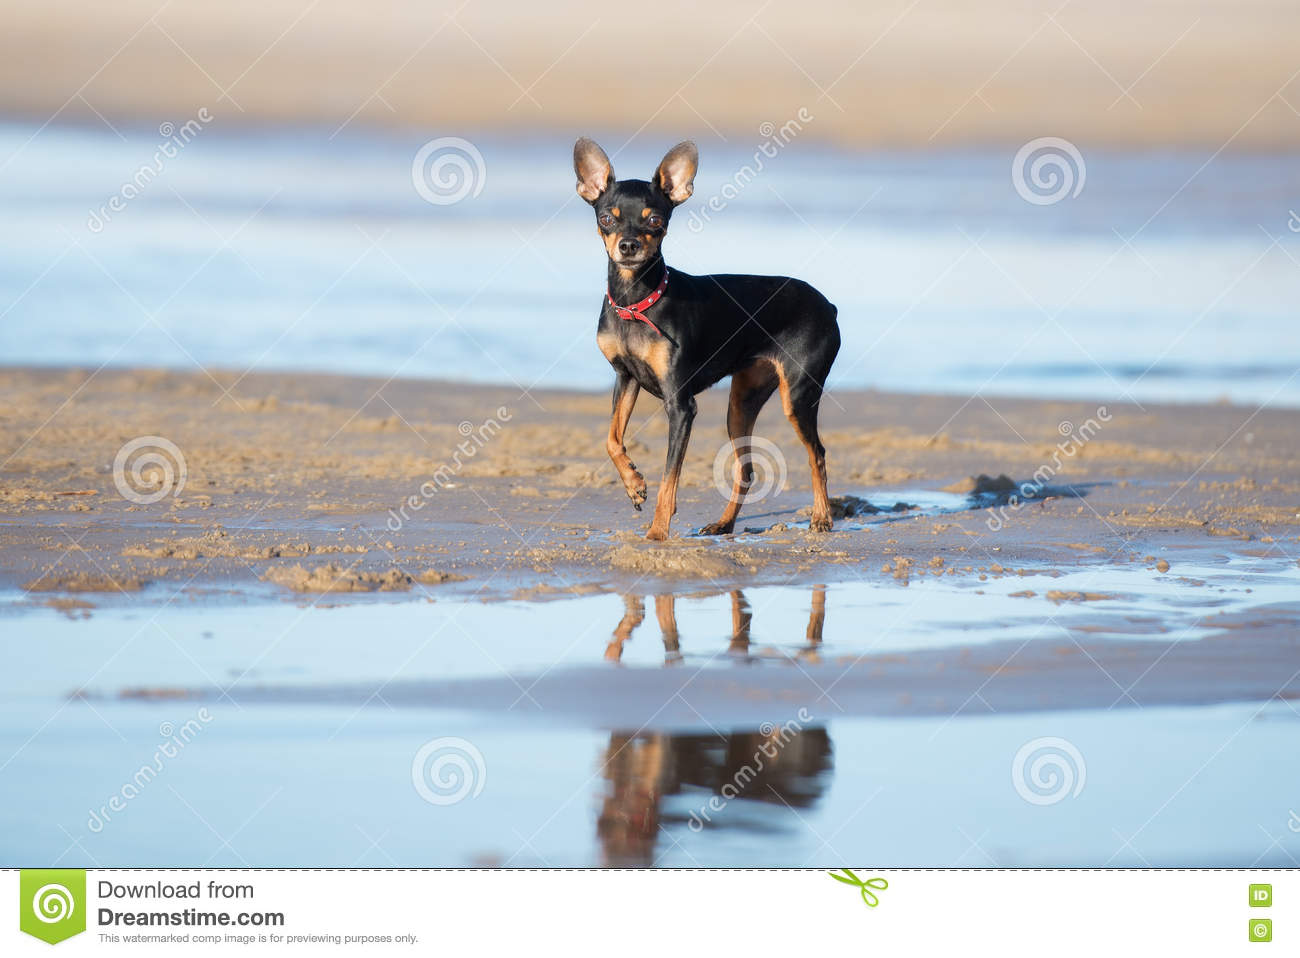 Download Russian Toy Dog Posing On The Beach Stock Image - Image of lovely, cute: 70288557